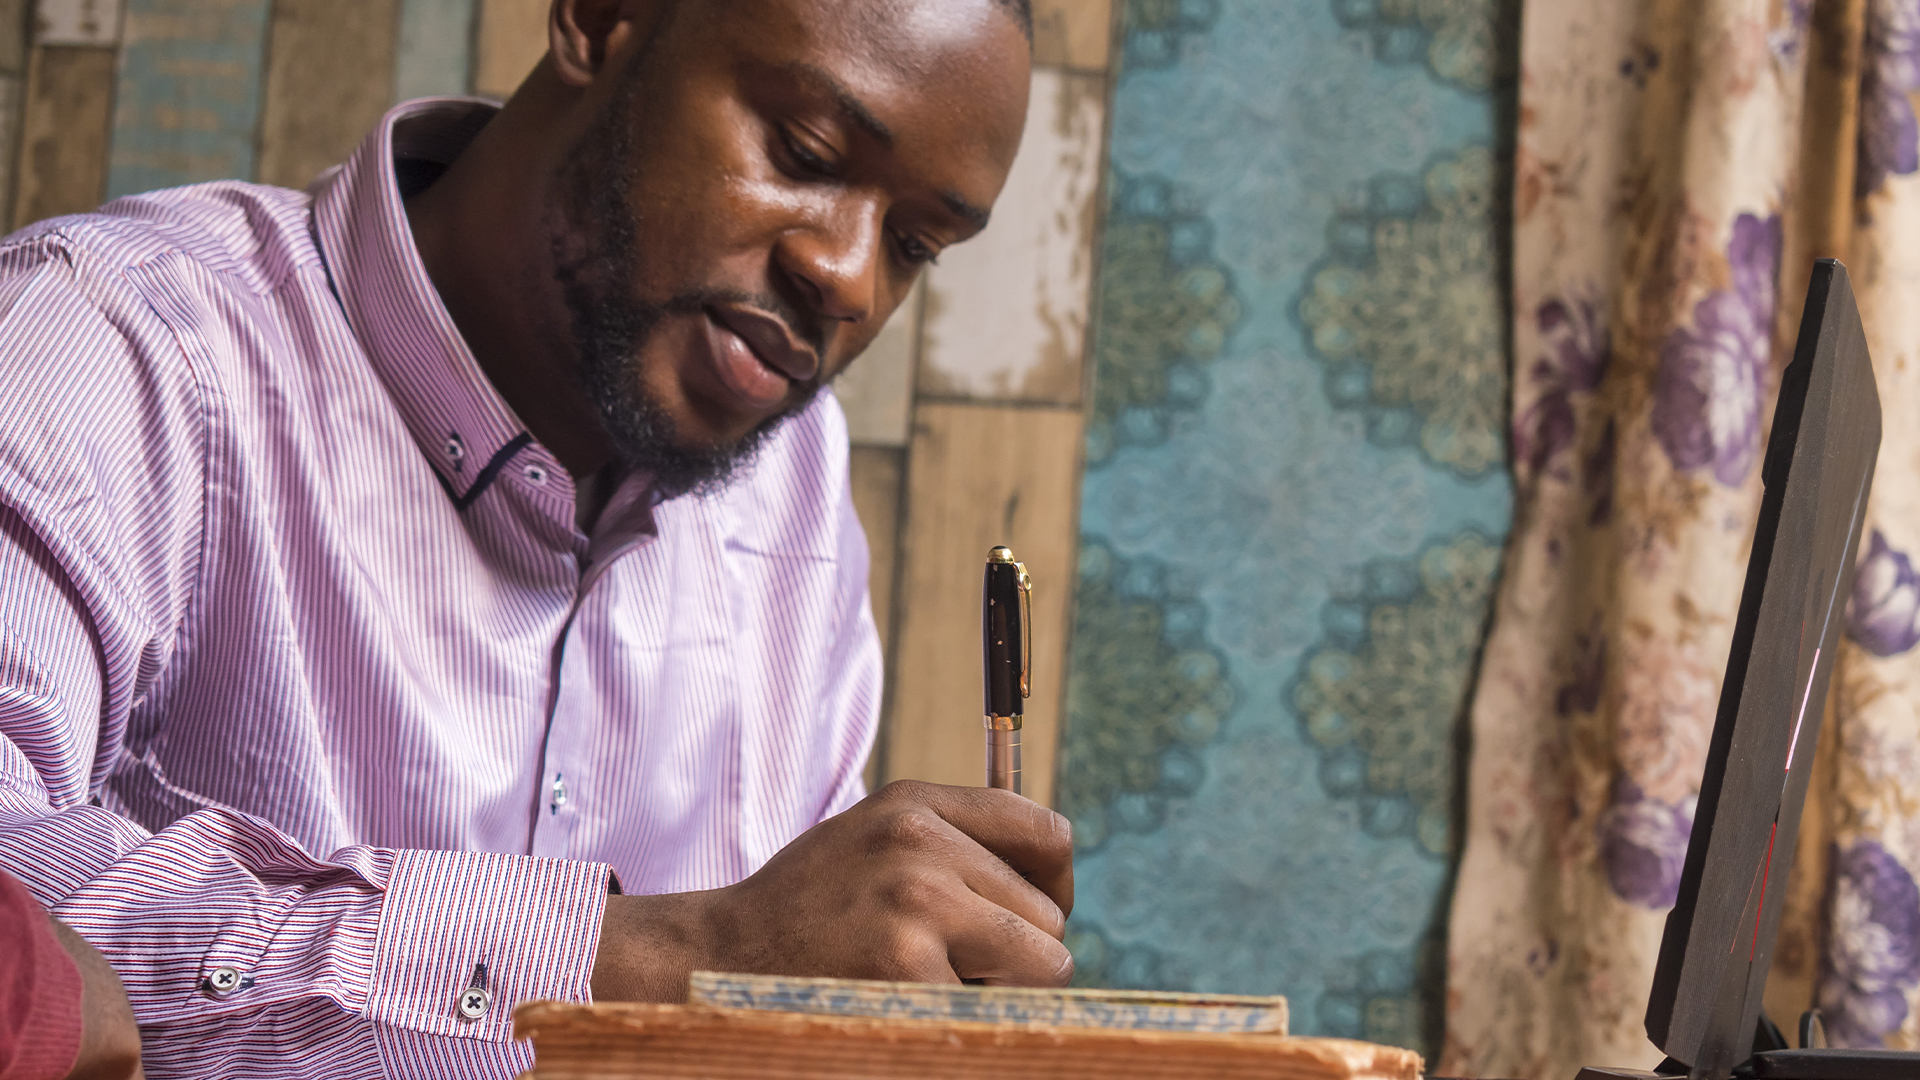 Formal church membership is important in Africa - African pastor writing a list